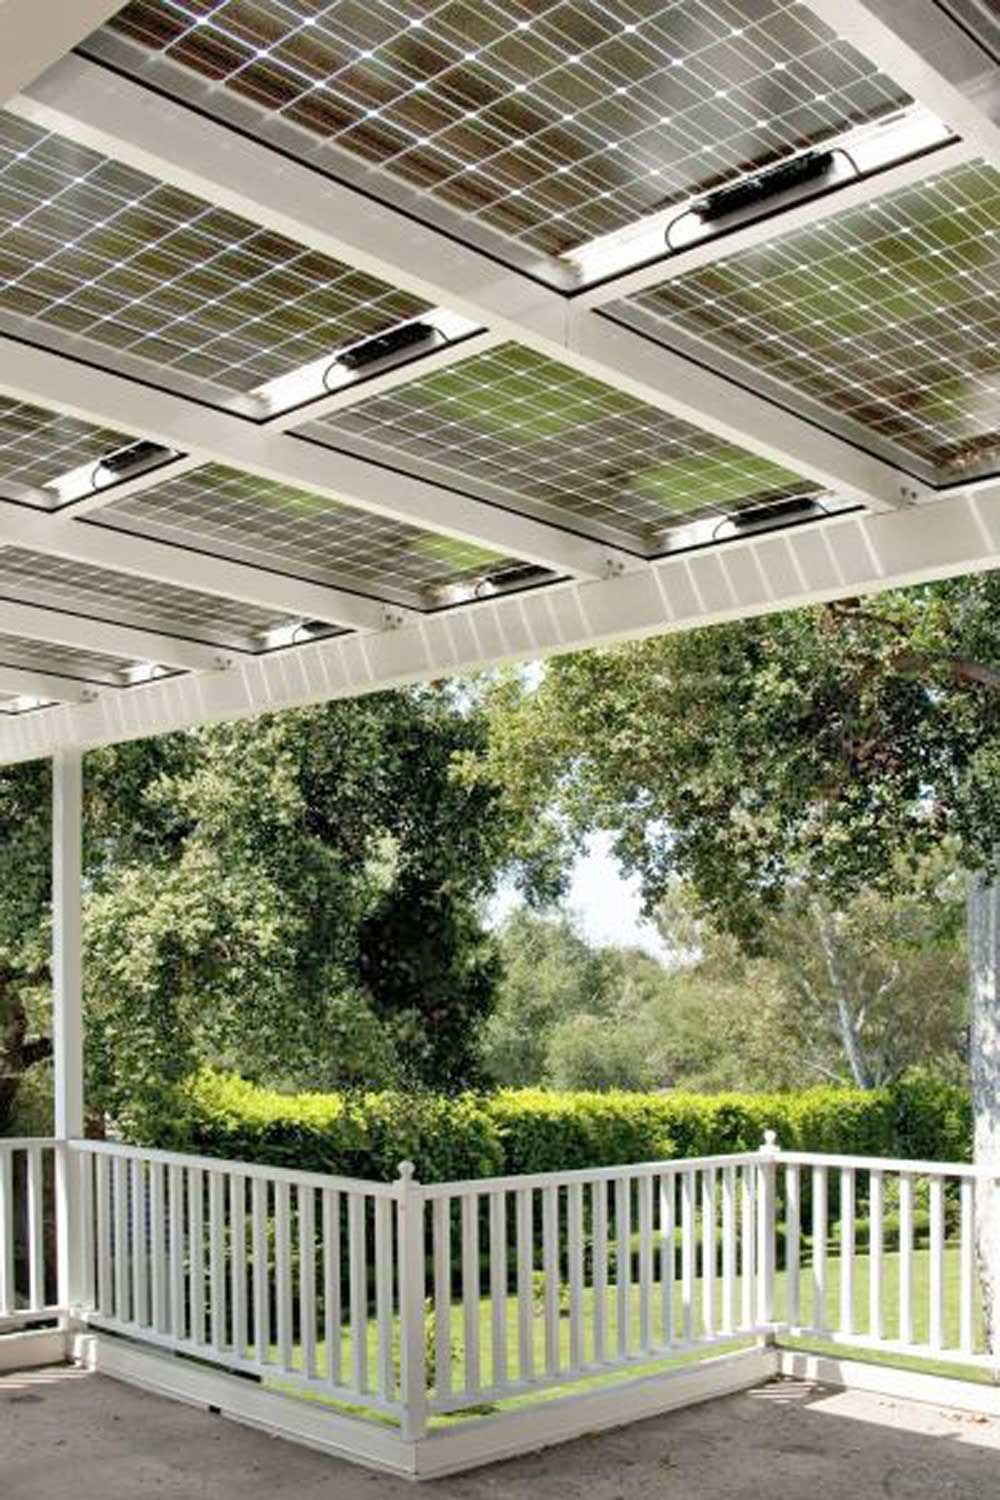 Solar Canopies u Awning Systems Photo Gallery SMALL HOUSE